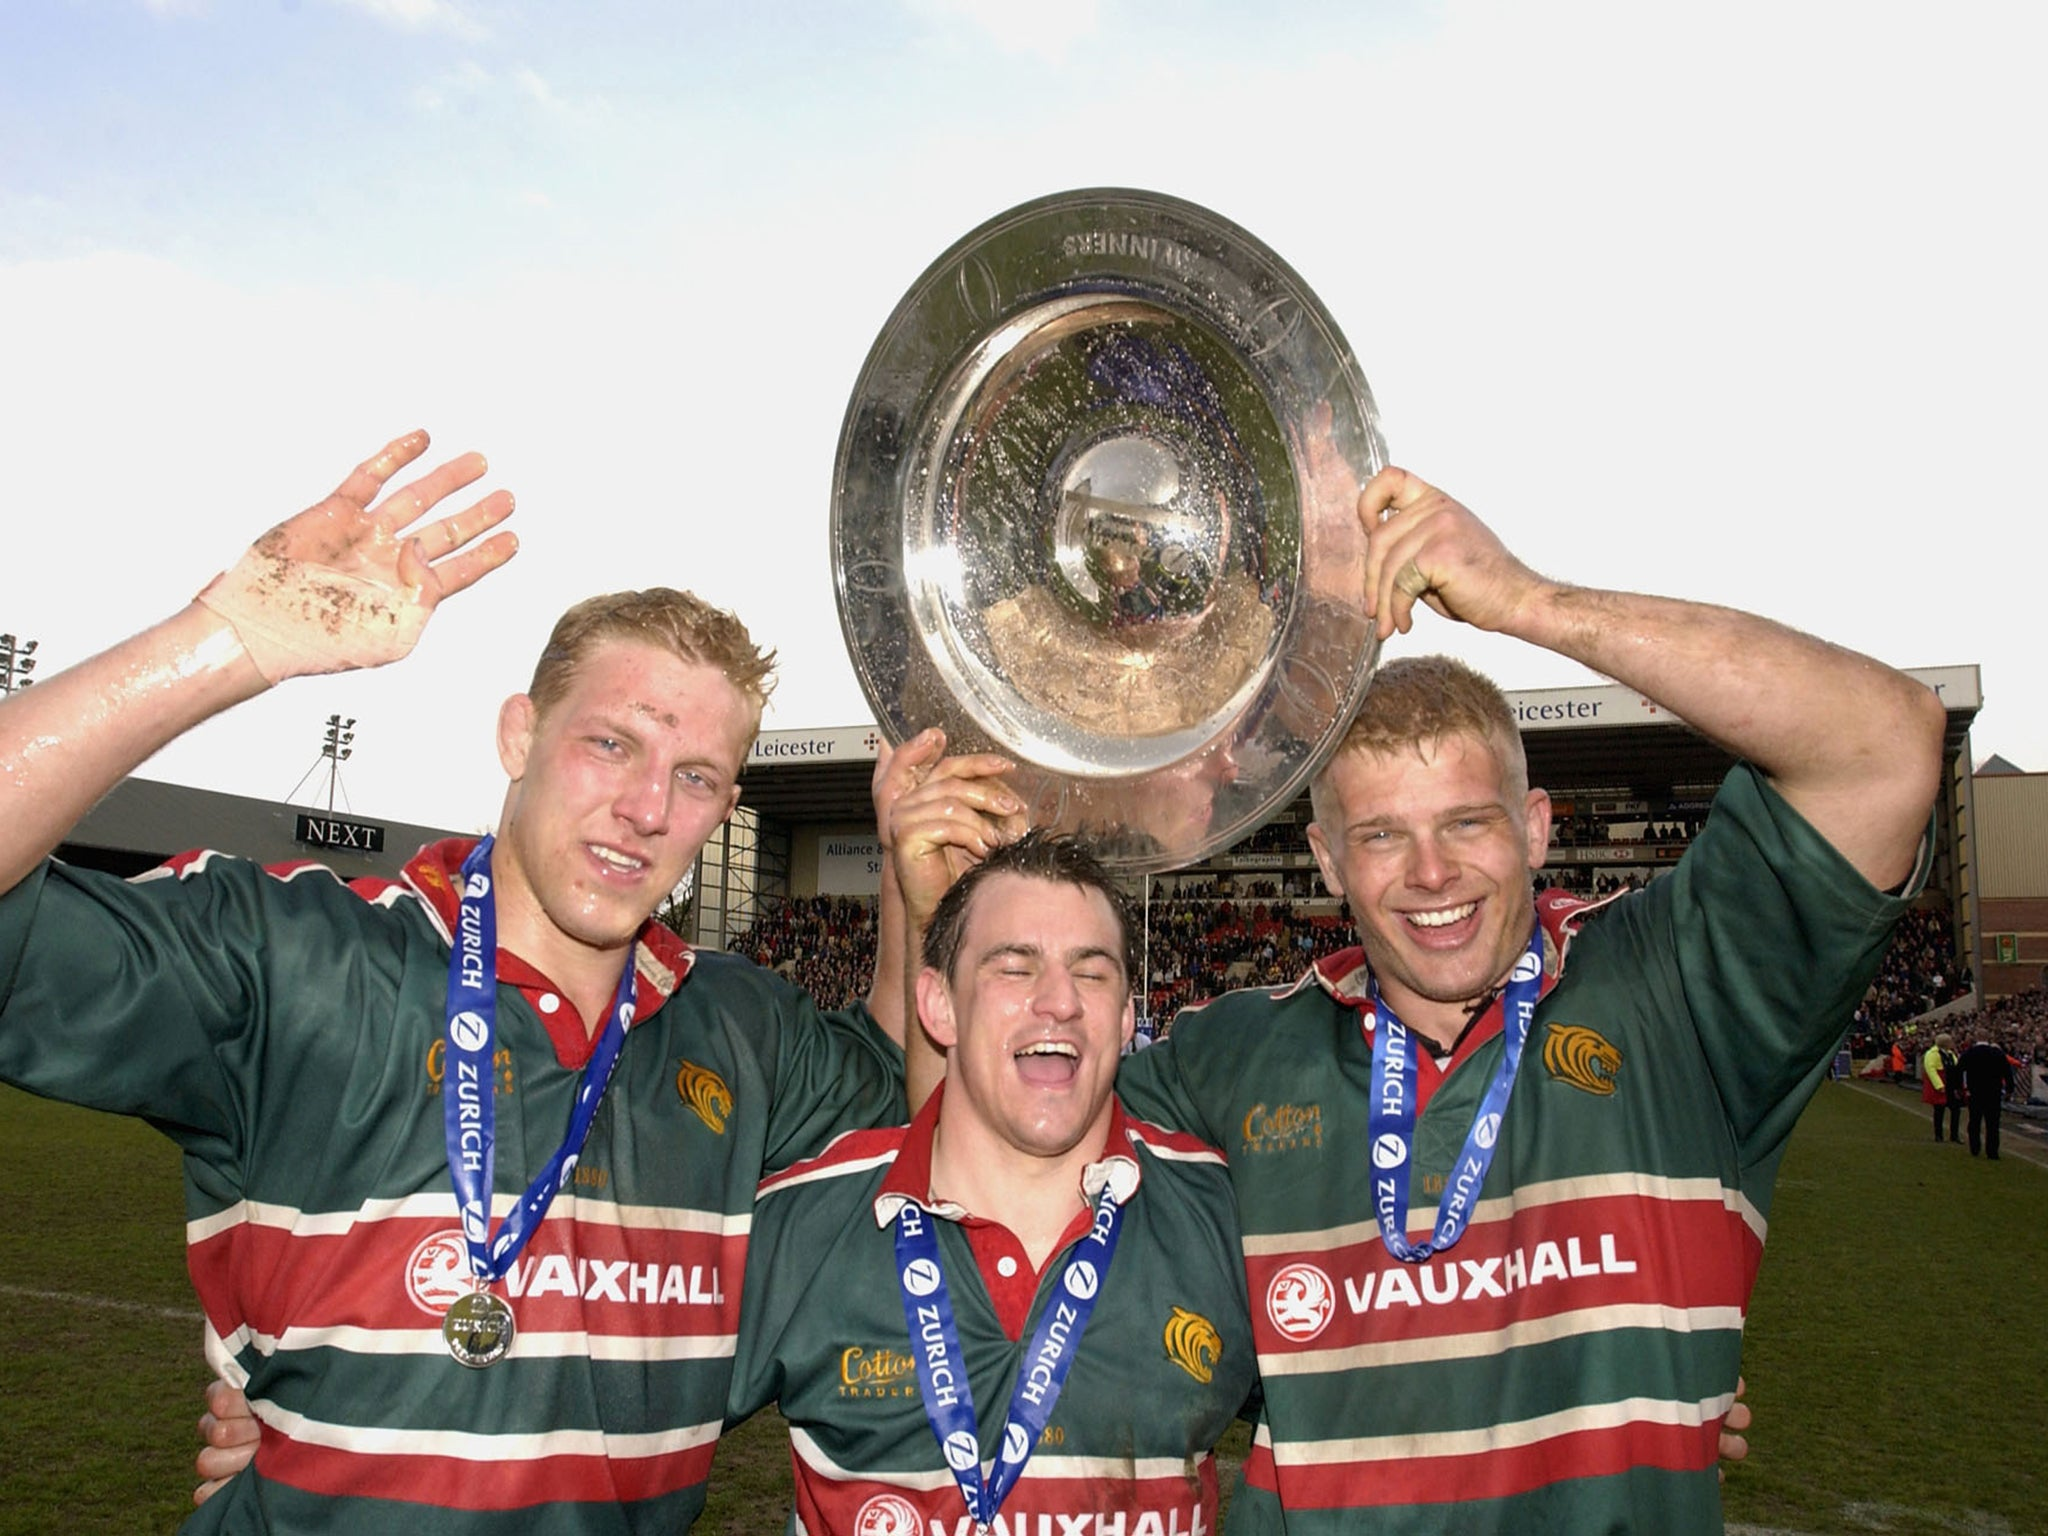 Steve Booth death: Former Leicester Tigers and Bath rugby player dies, aged 42